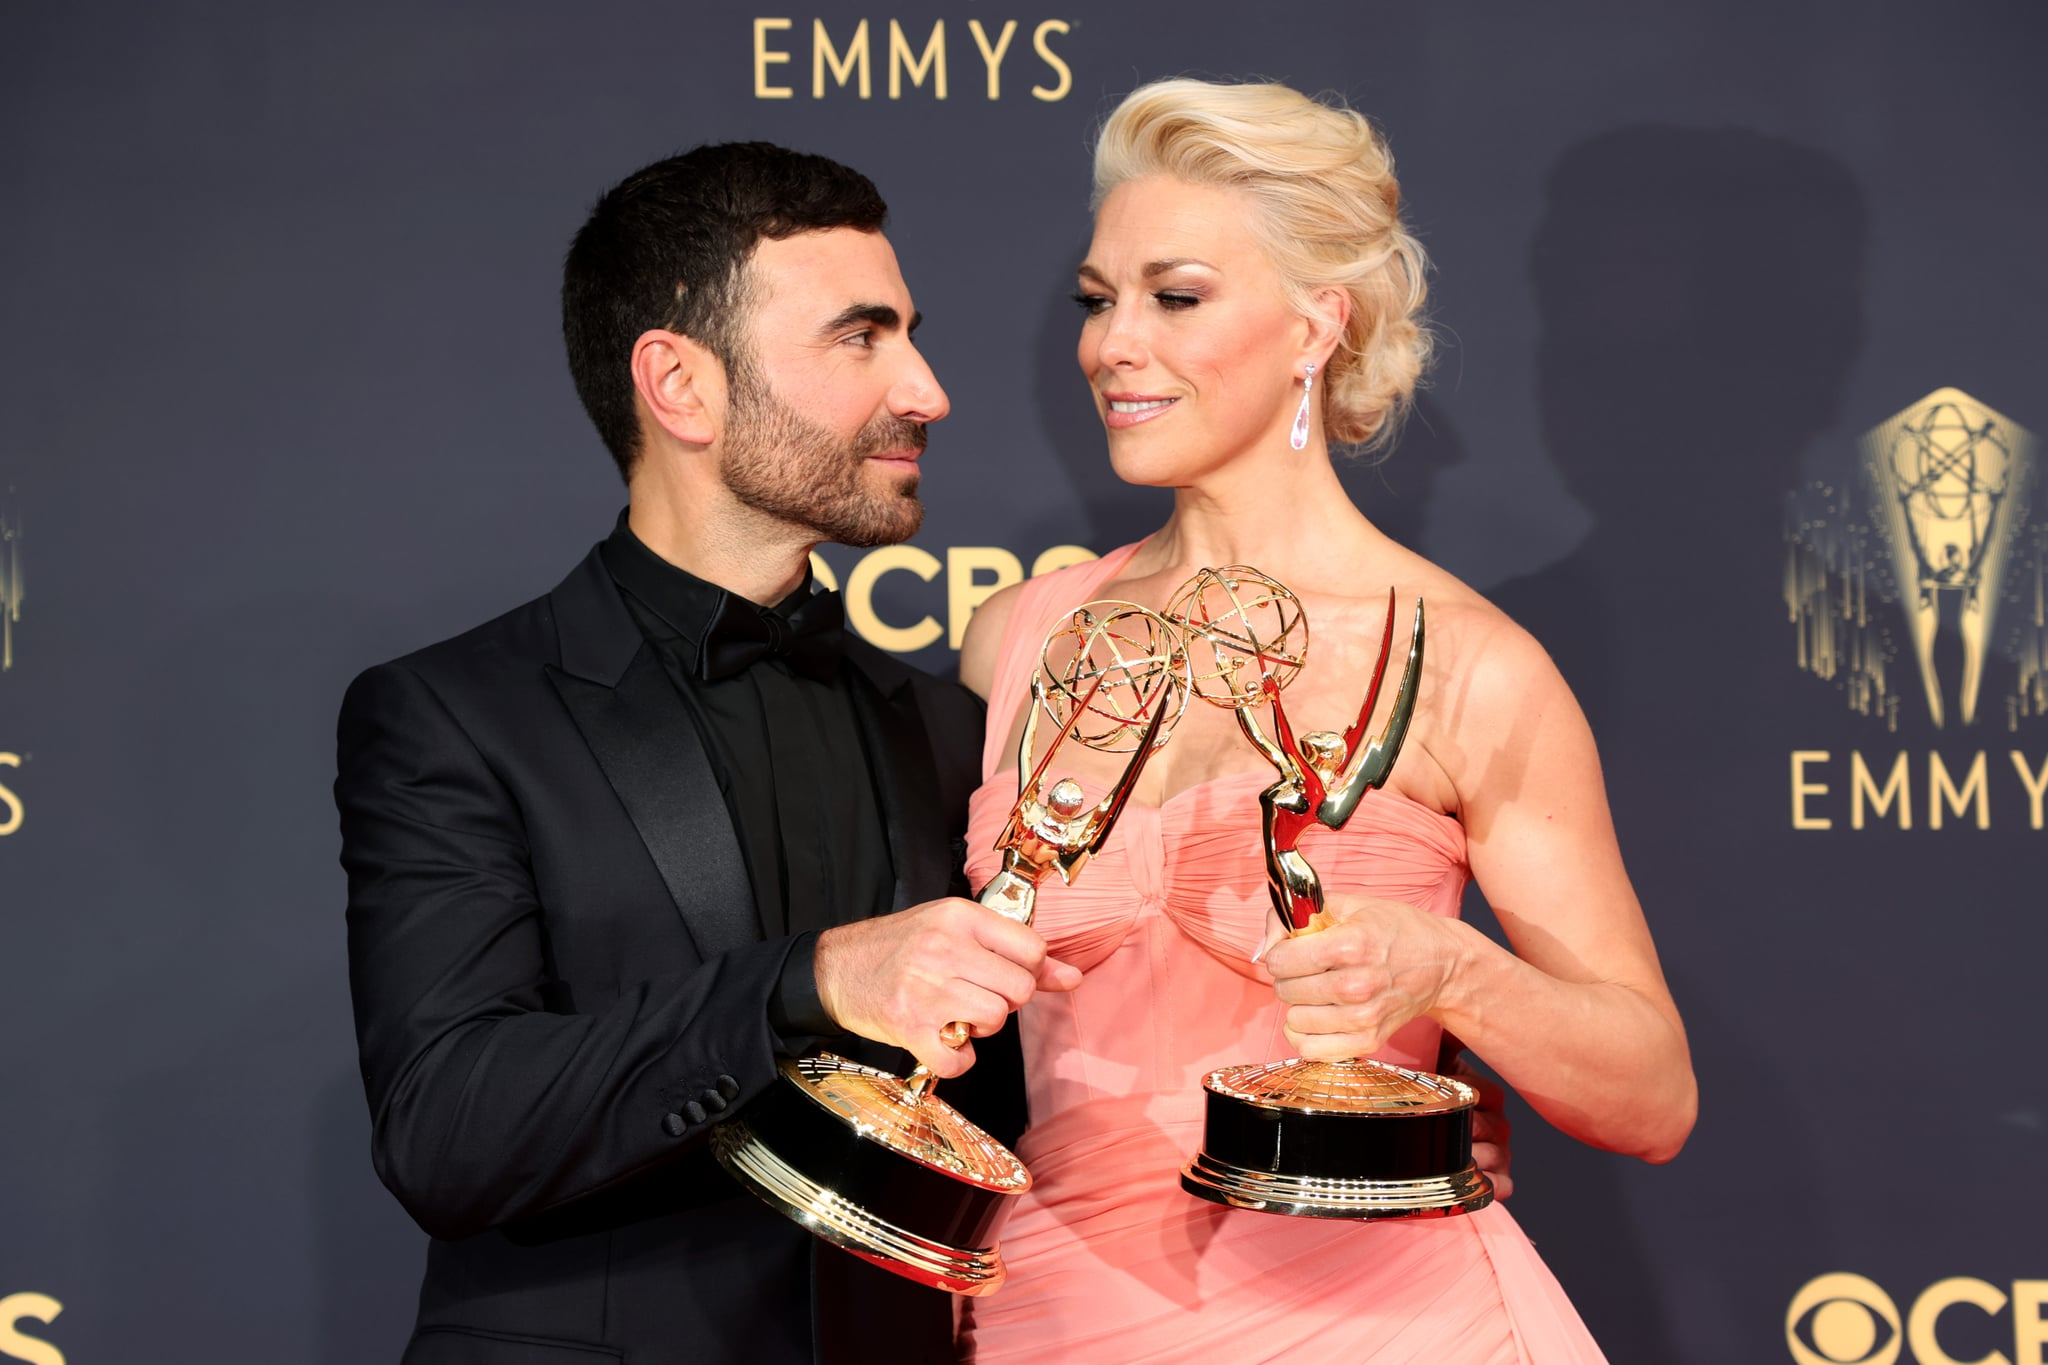 LOS ANGELES, CALIFORNIA - SEPTEMBER 19: (L-R) Brett Goldstein, winner of the Outstanding Supporting Actor in a Comedy Series award for 'Ted Lasso,' and Hannah Waddingham, winner of the Outstanding Supporting Actress in a Comedy Series award for 'Ted Lasso,' pose in the press room during the 73rd Primetime Emmy Awards at L.A. LIVE on September 19, 2021 in Los Angeles, California. (Photo by Rich Fury/Getty Images)